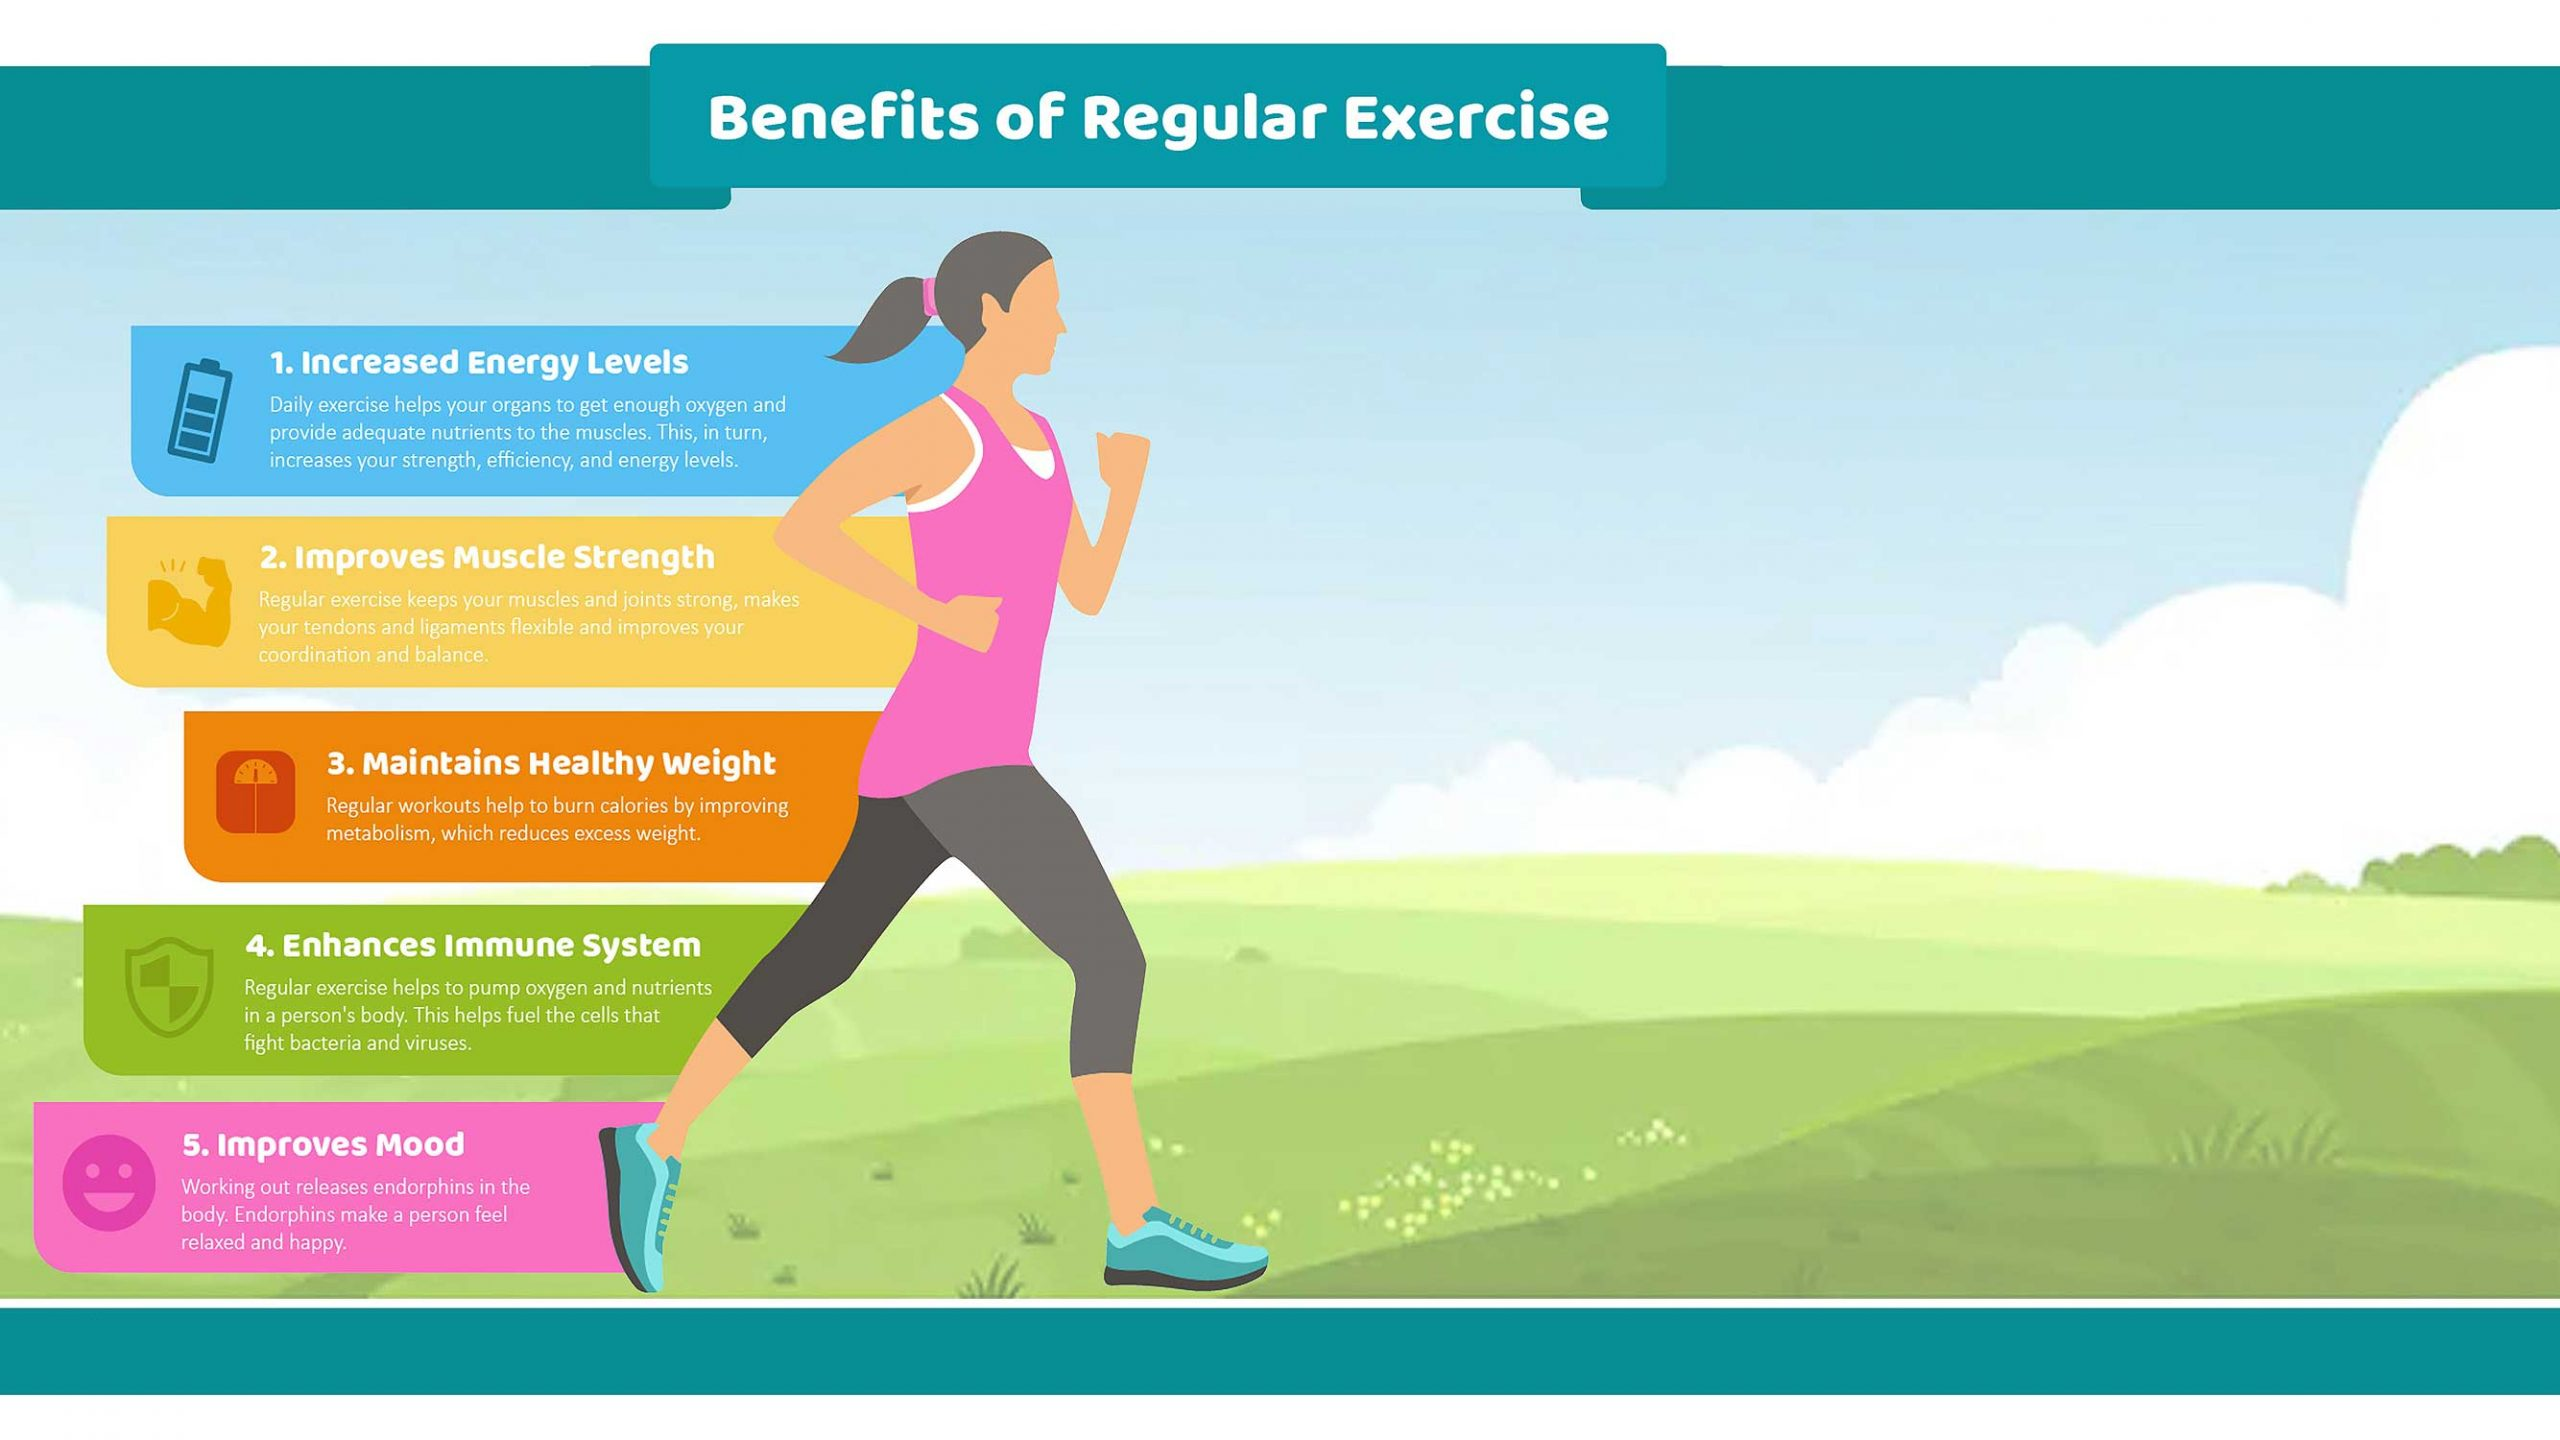 BenefitsOfRegularExercise